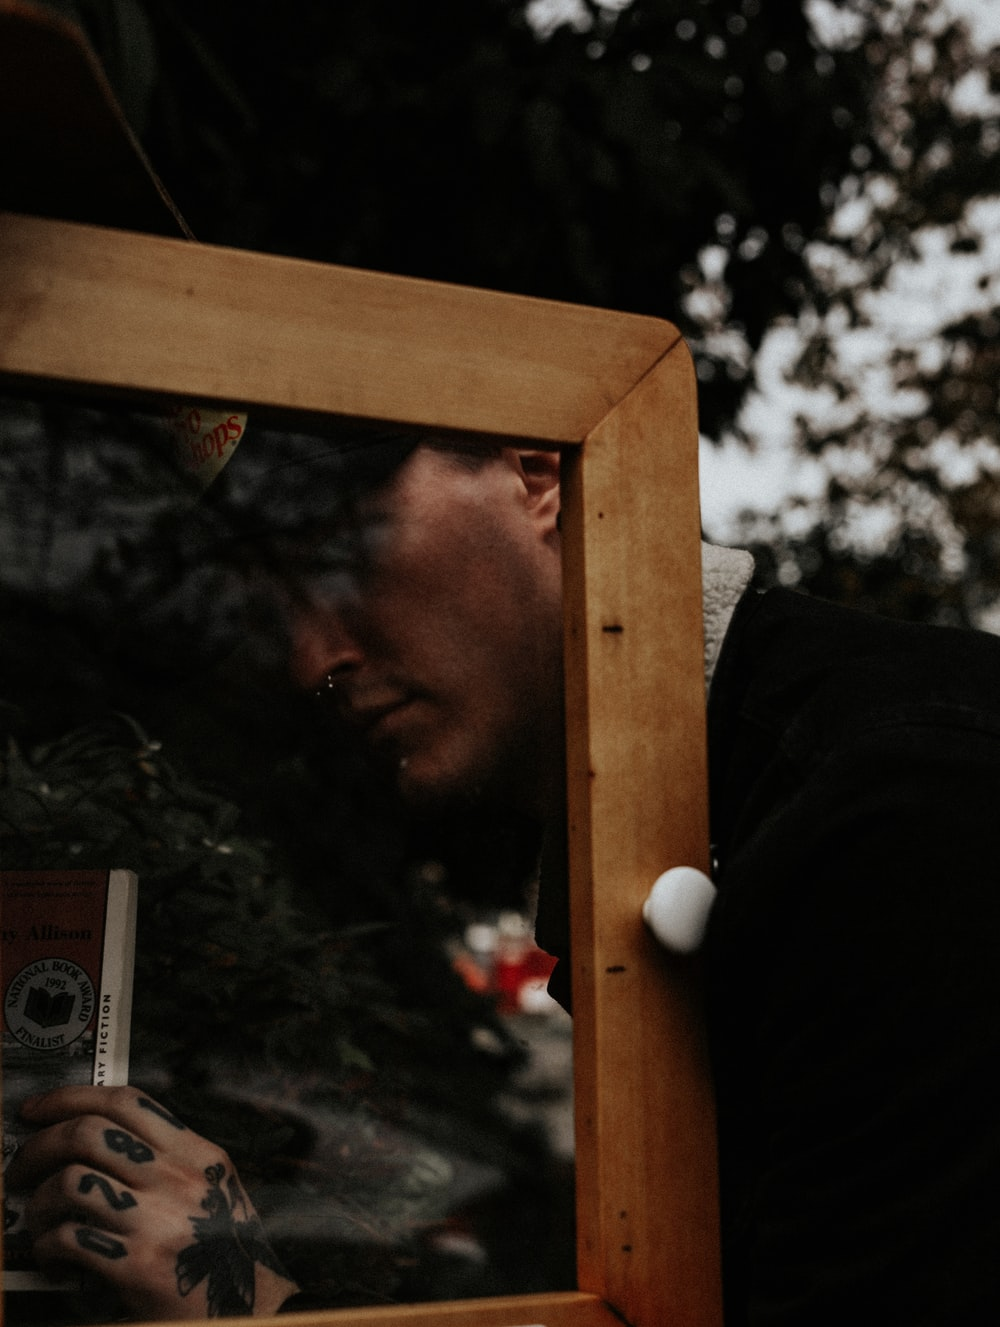 man holding a camera in a brown wooden frame